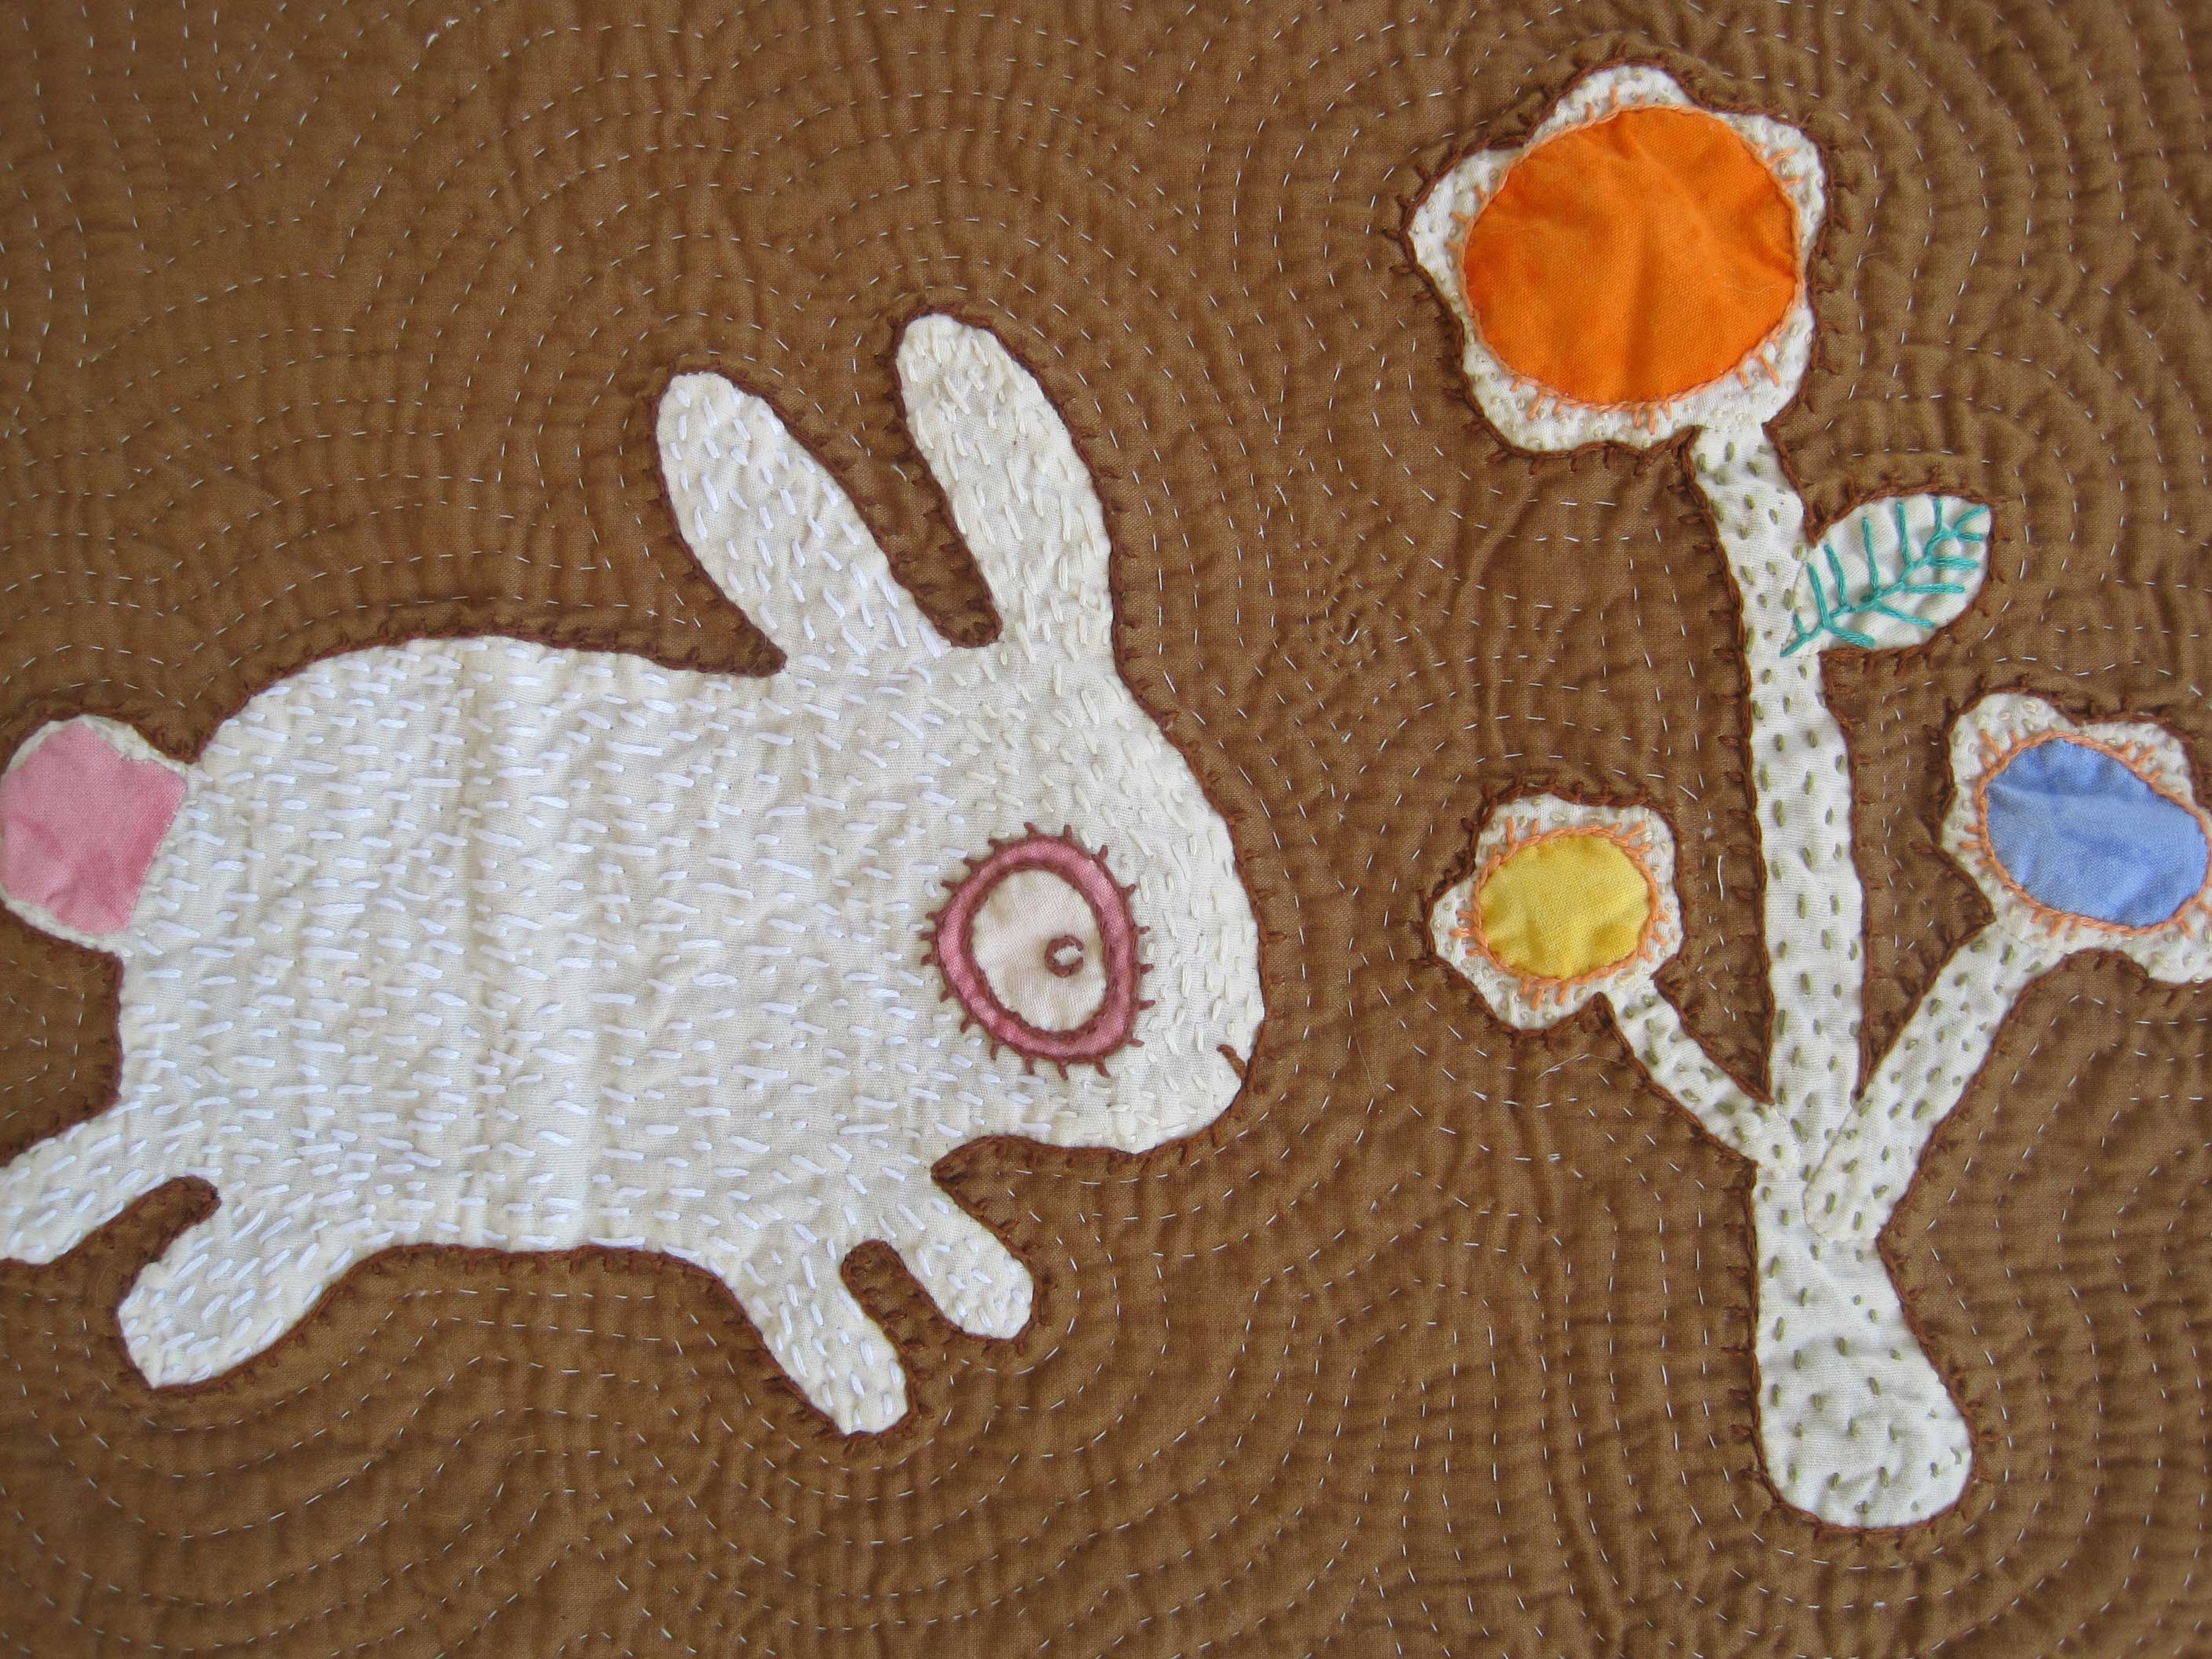 rabbit a andrea zuill s blog